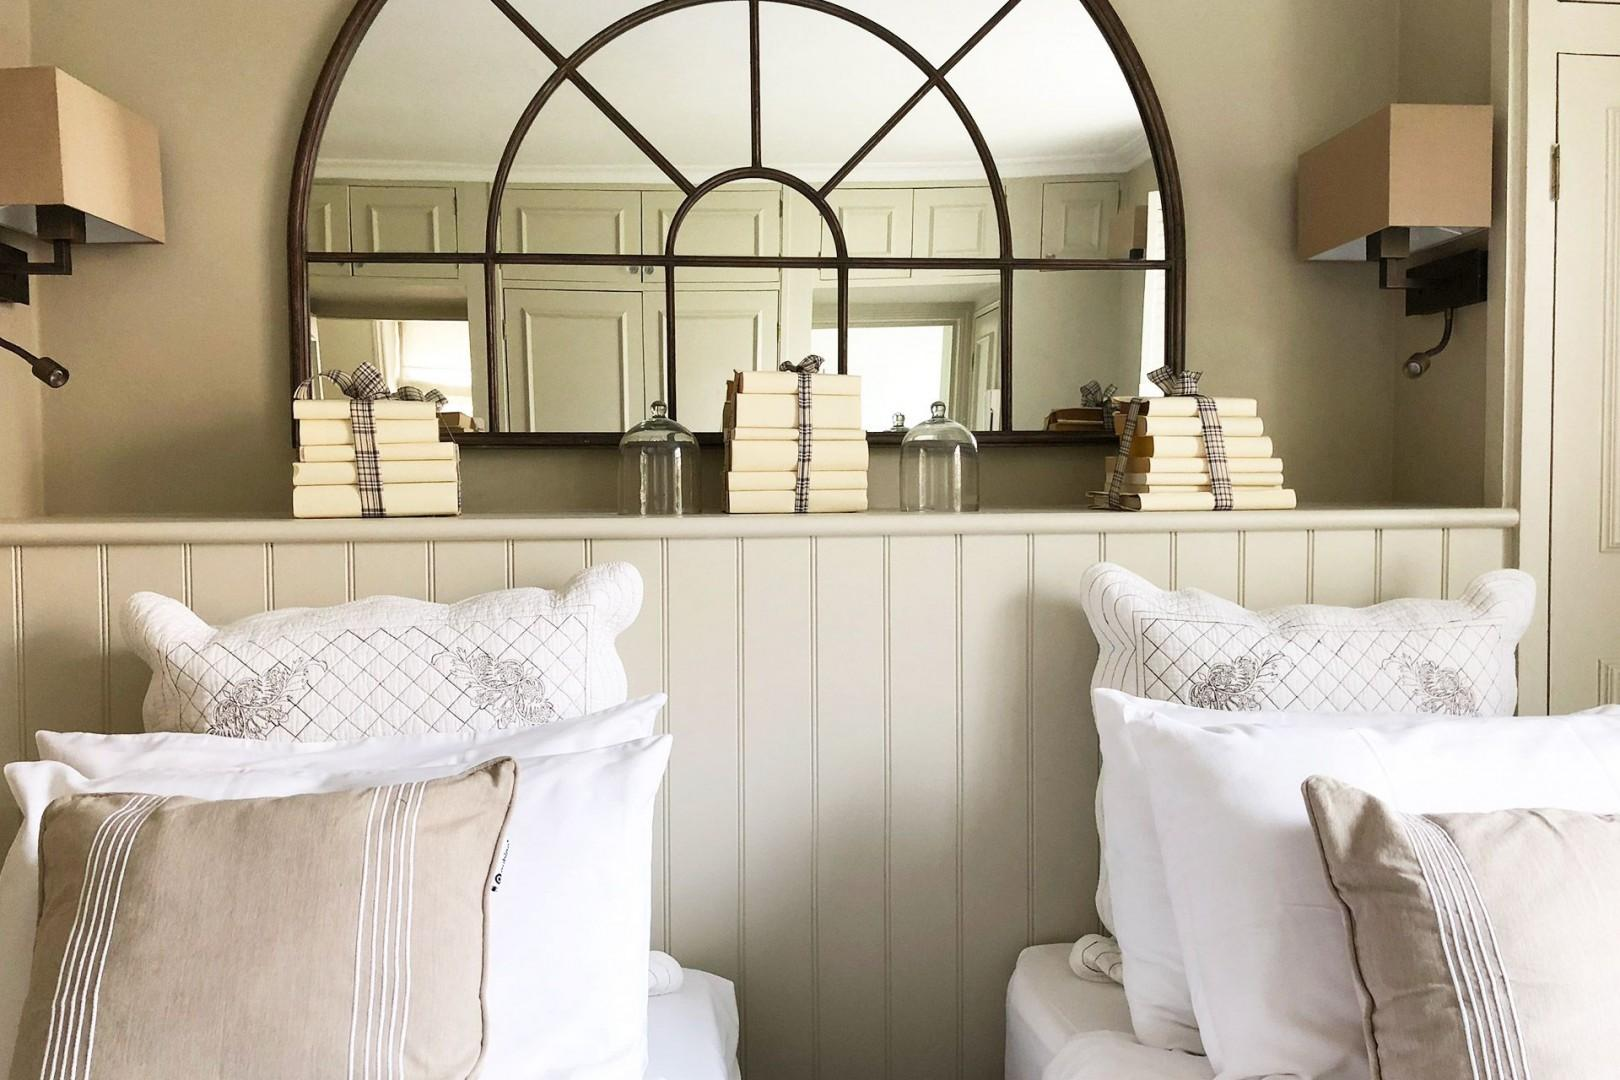 Shelf and window frame mirror above the beds